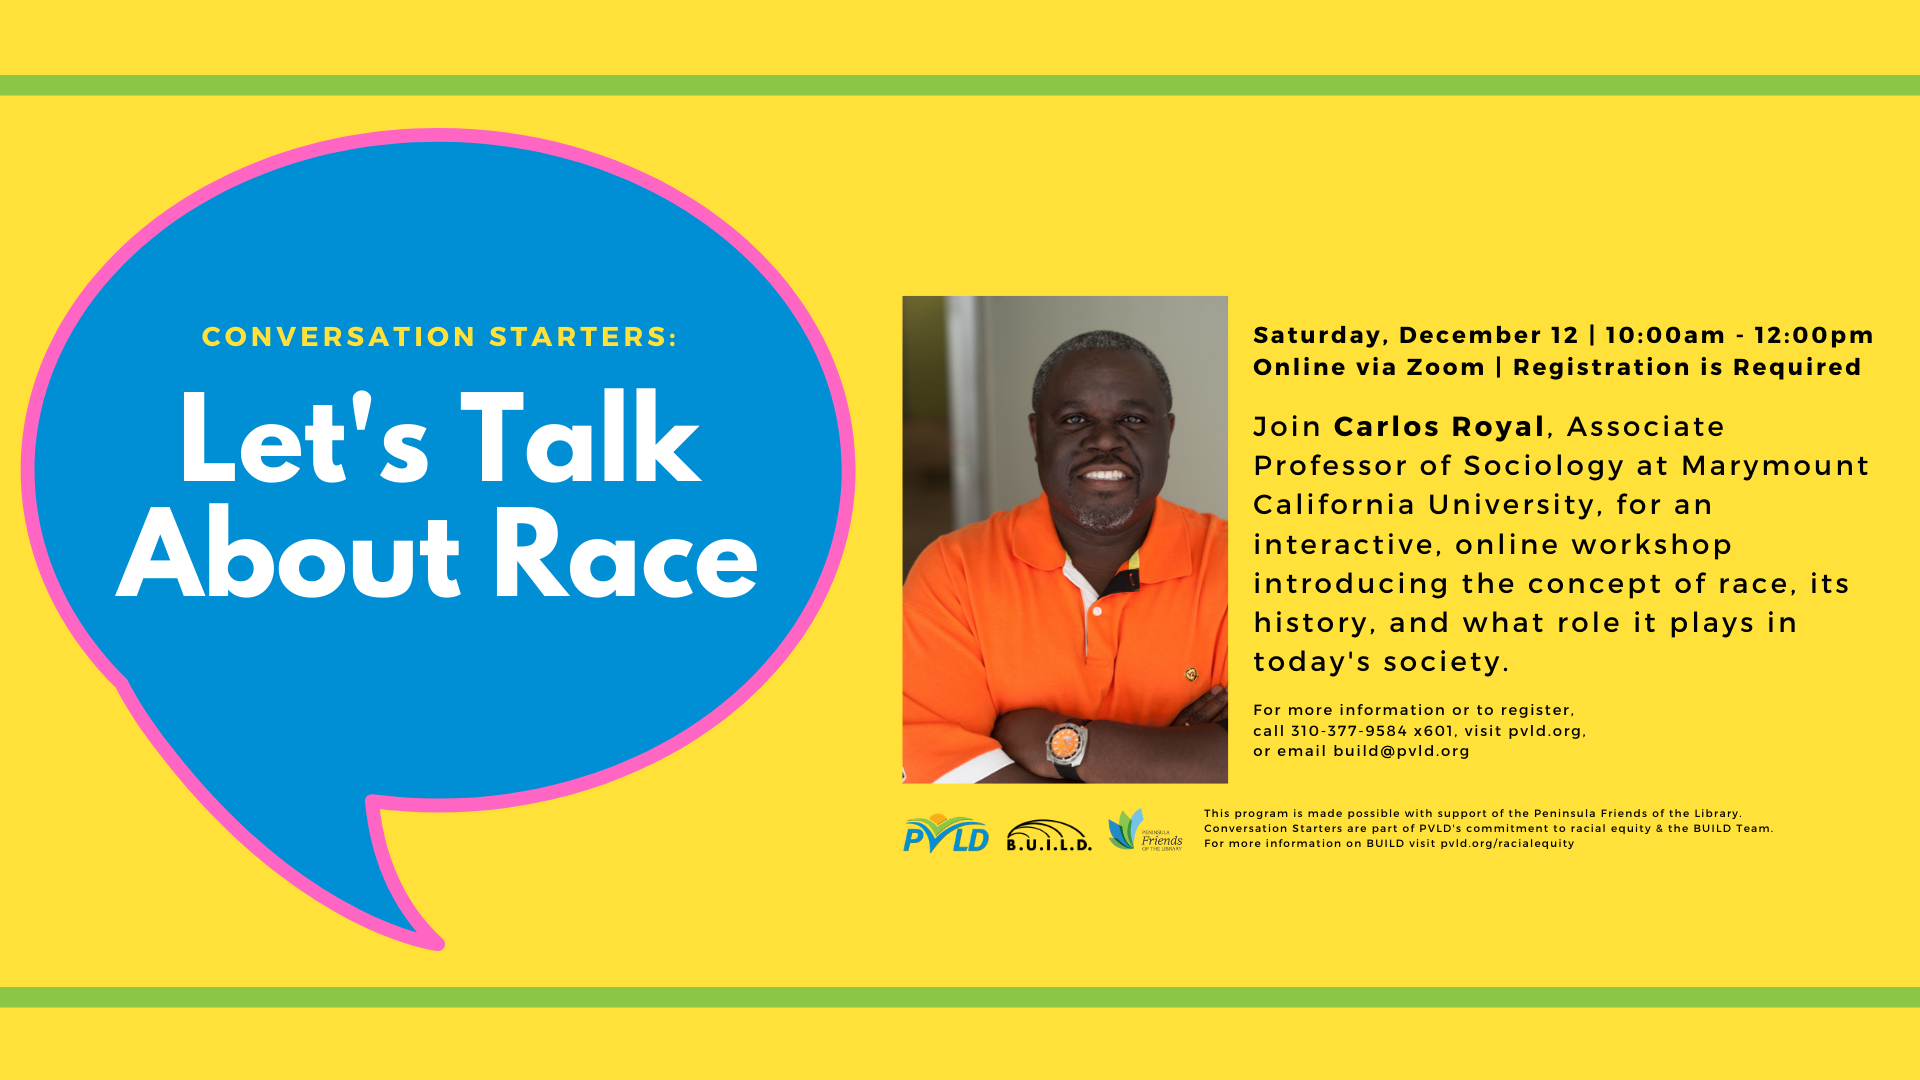 Conversation Starters: Let's Talk About Race. Saturday, December 12, 2020. Online via Zoom. Registration Required.